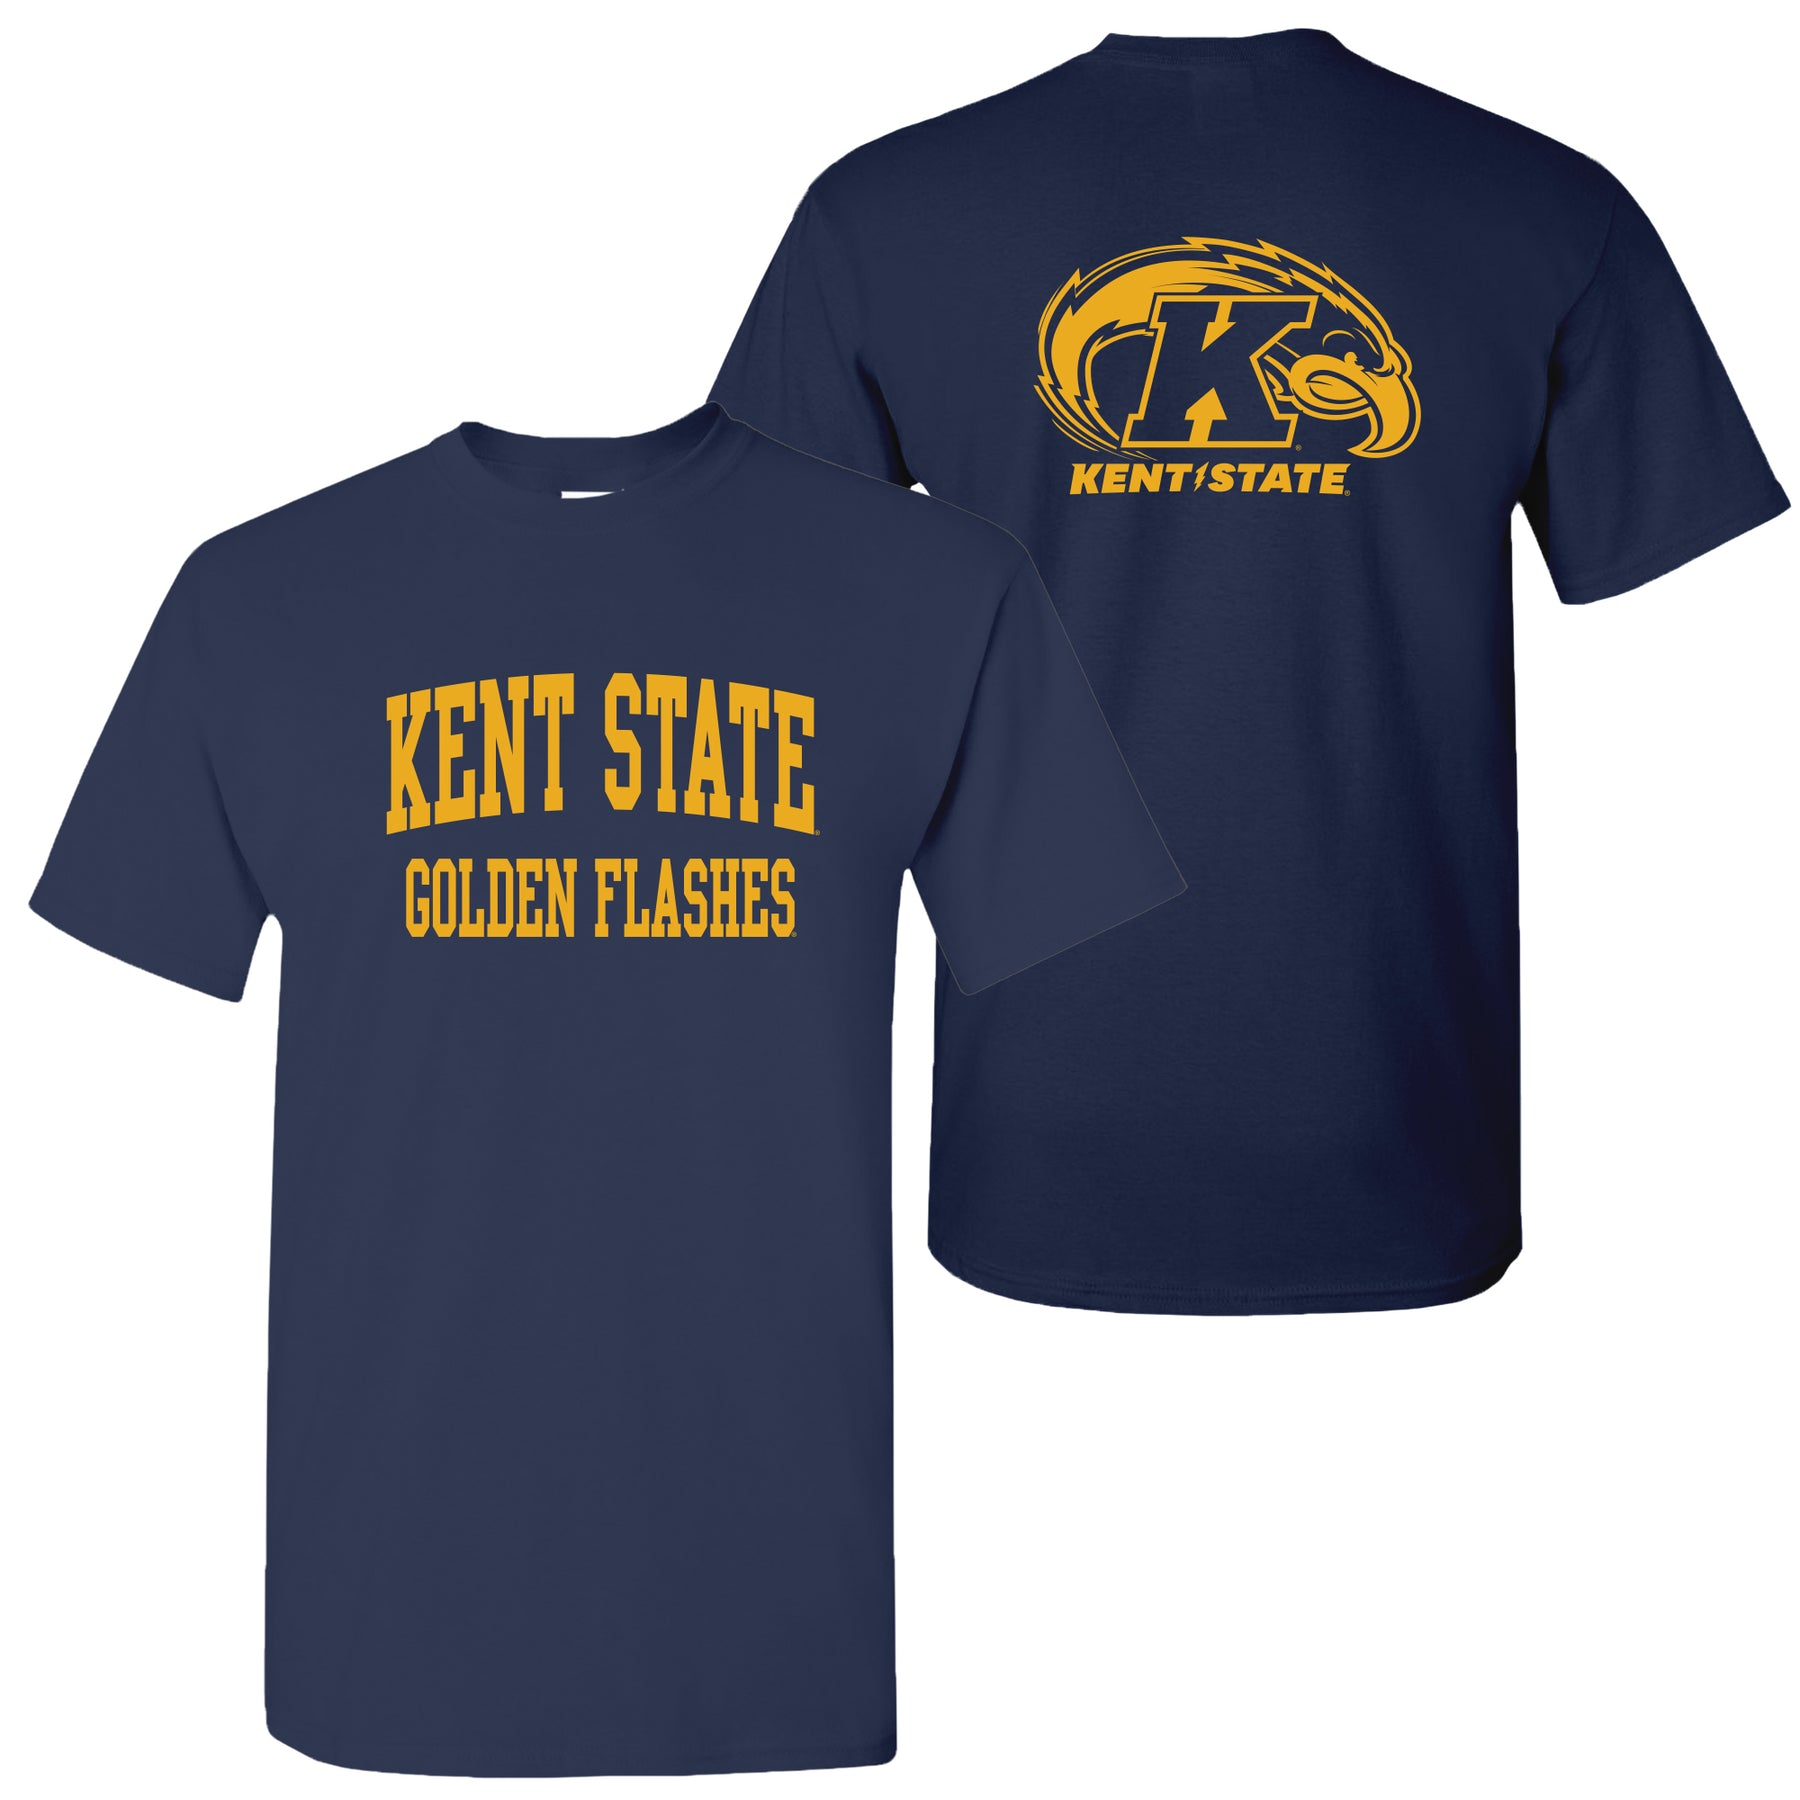 NCAA Kent State Golden Flashes T-Shirt V2